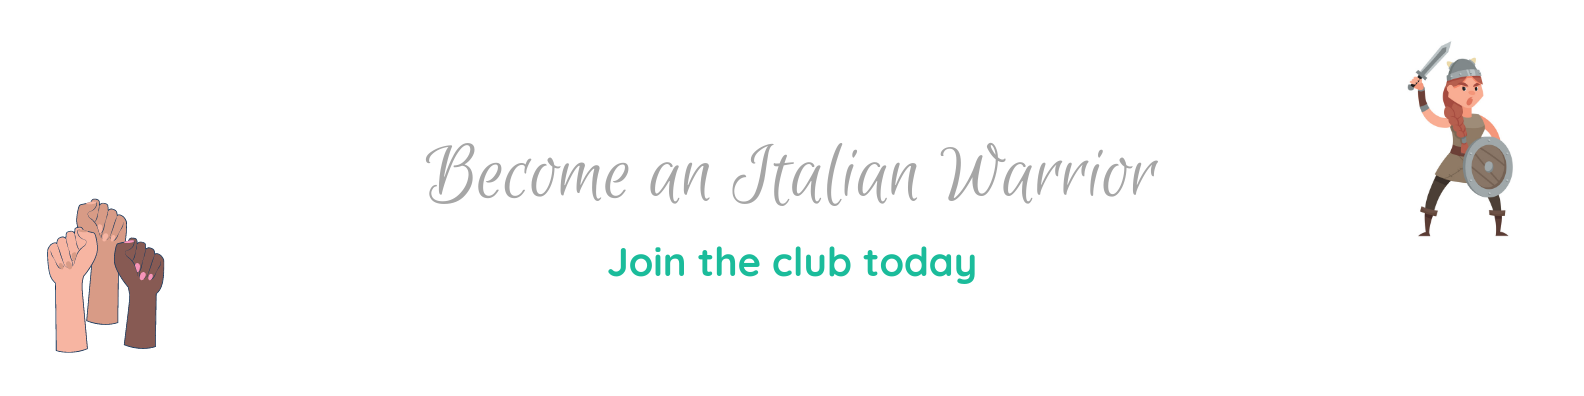 Join the Italian Warriors Club